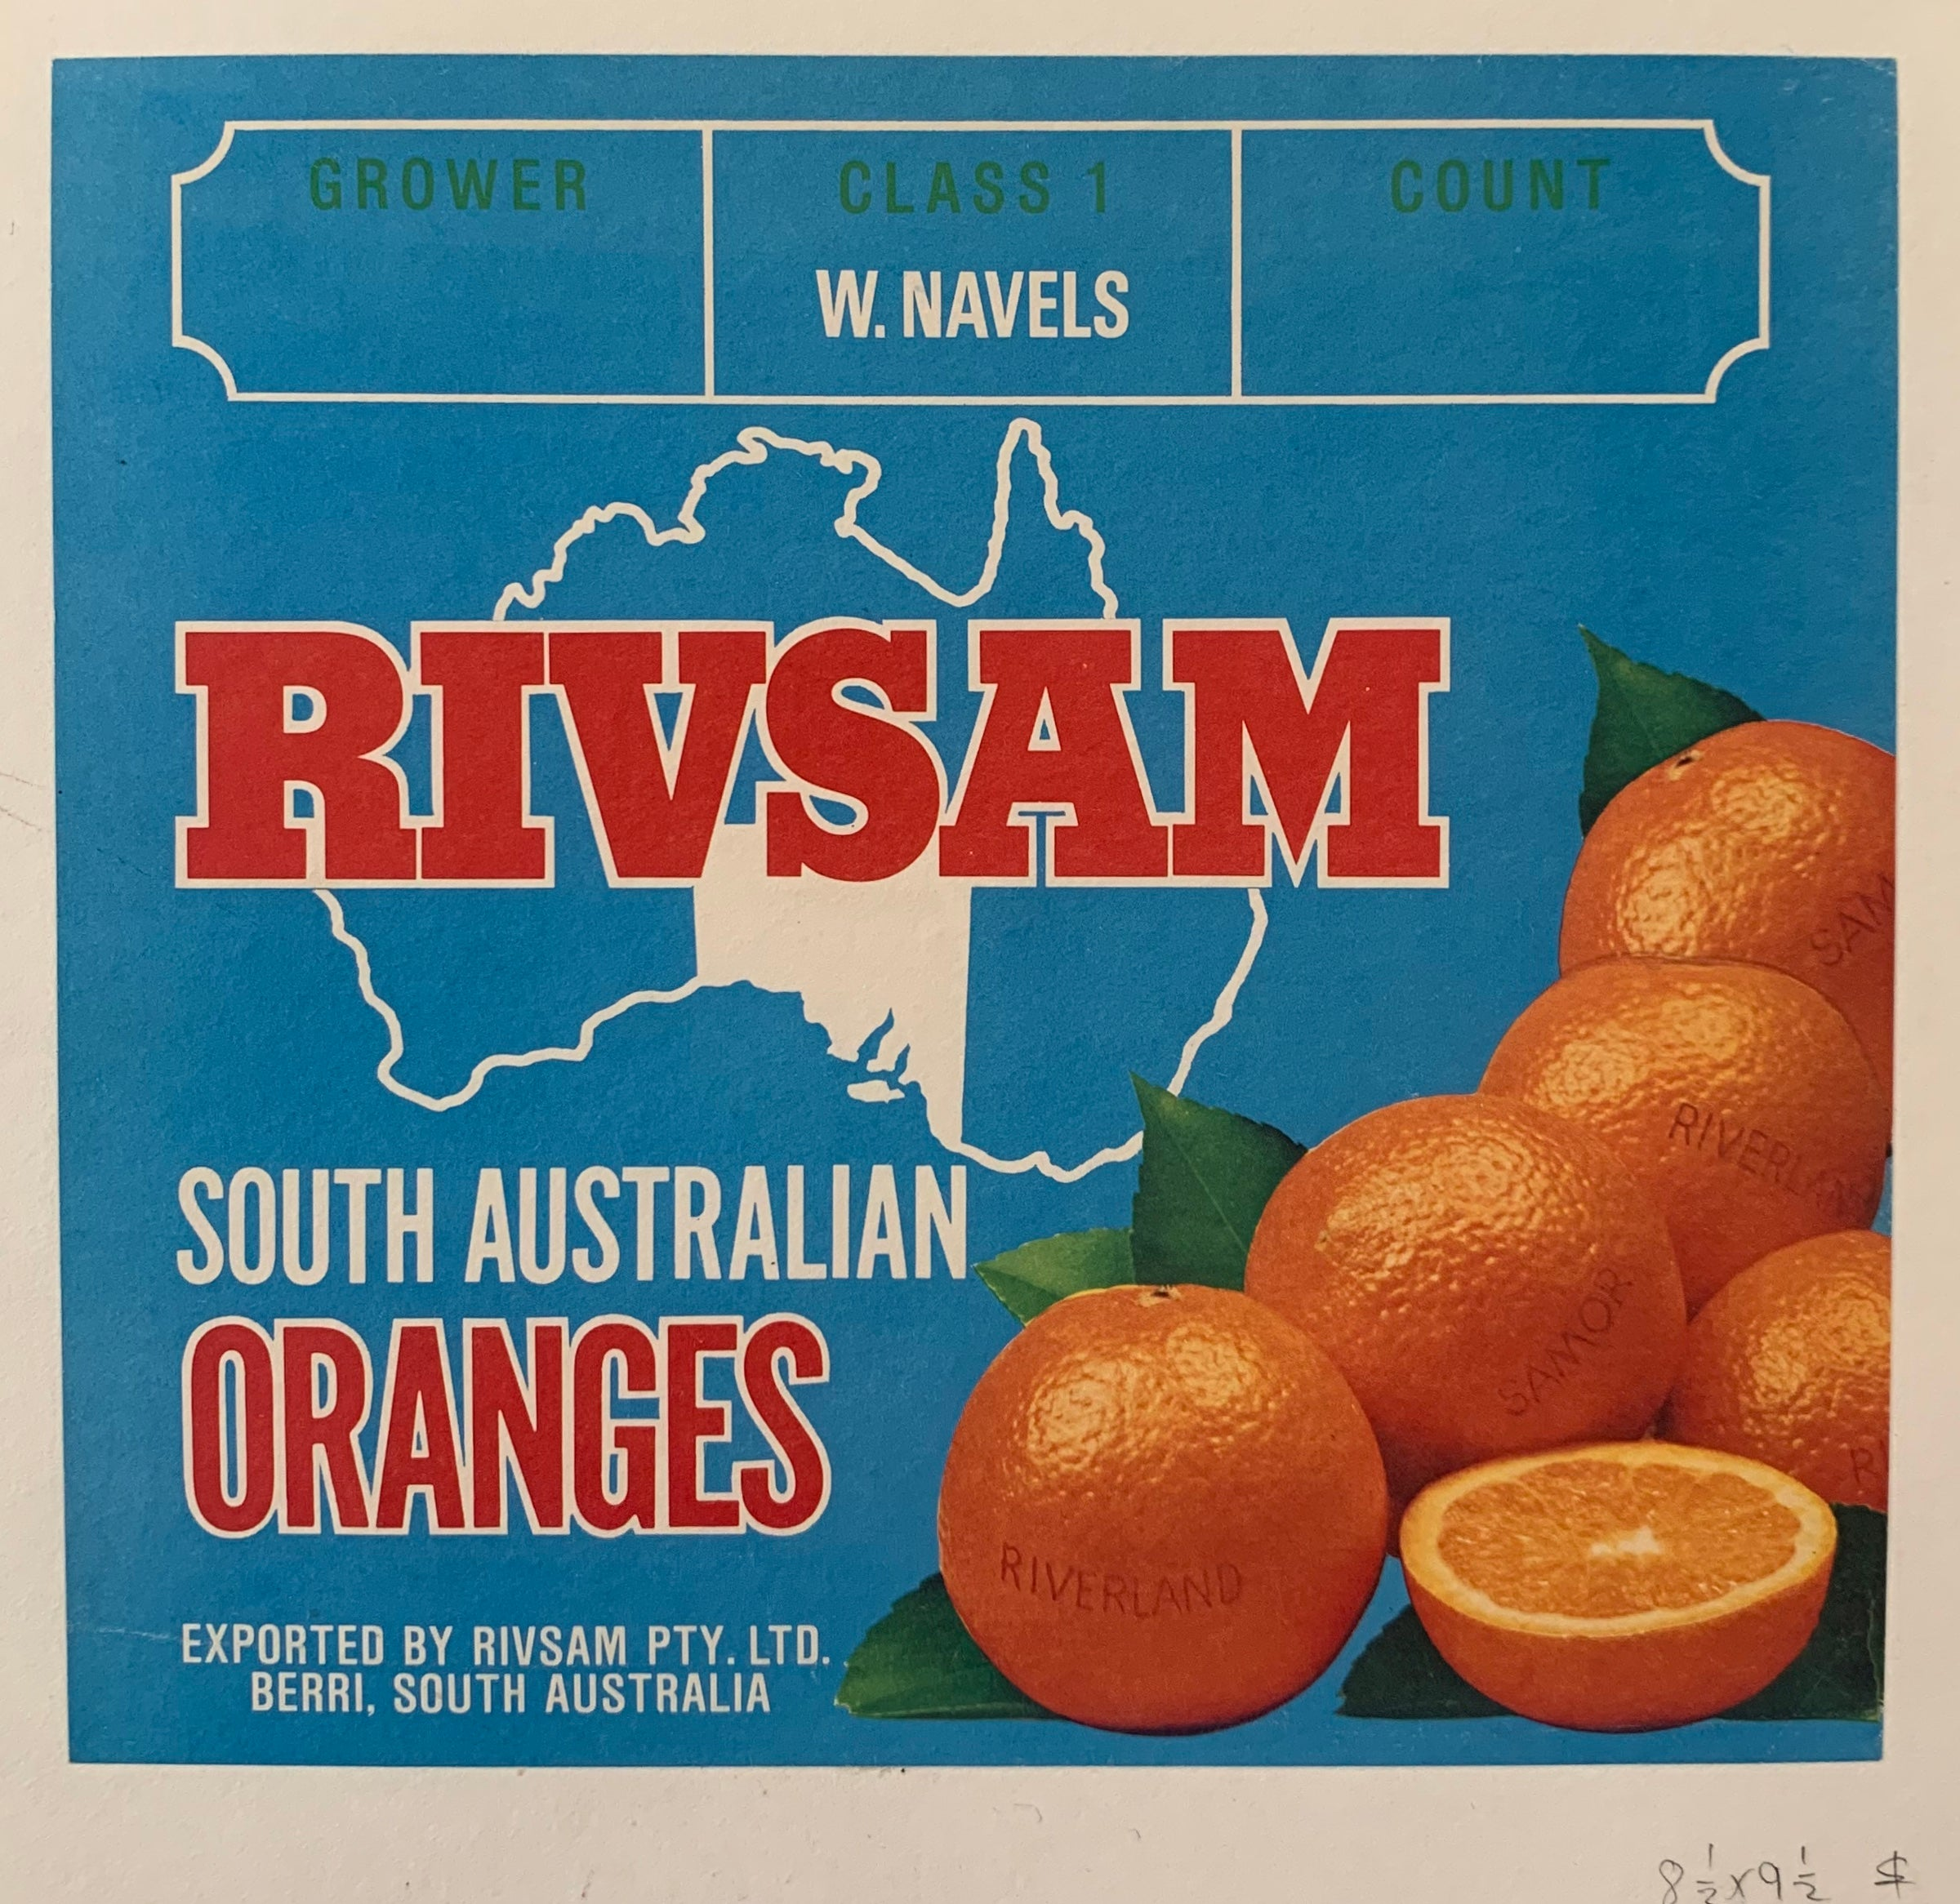 Rivsam South Australian Oranges